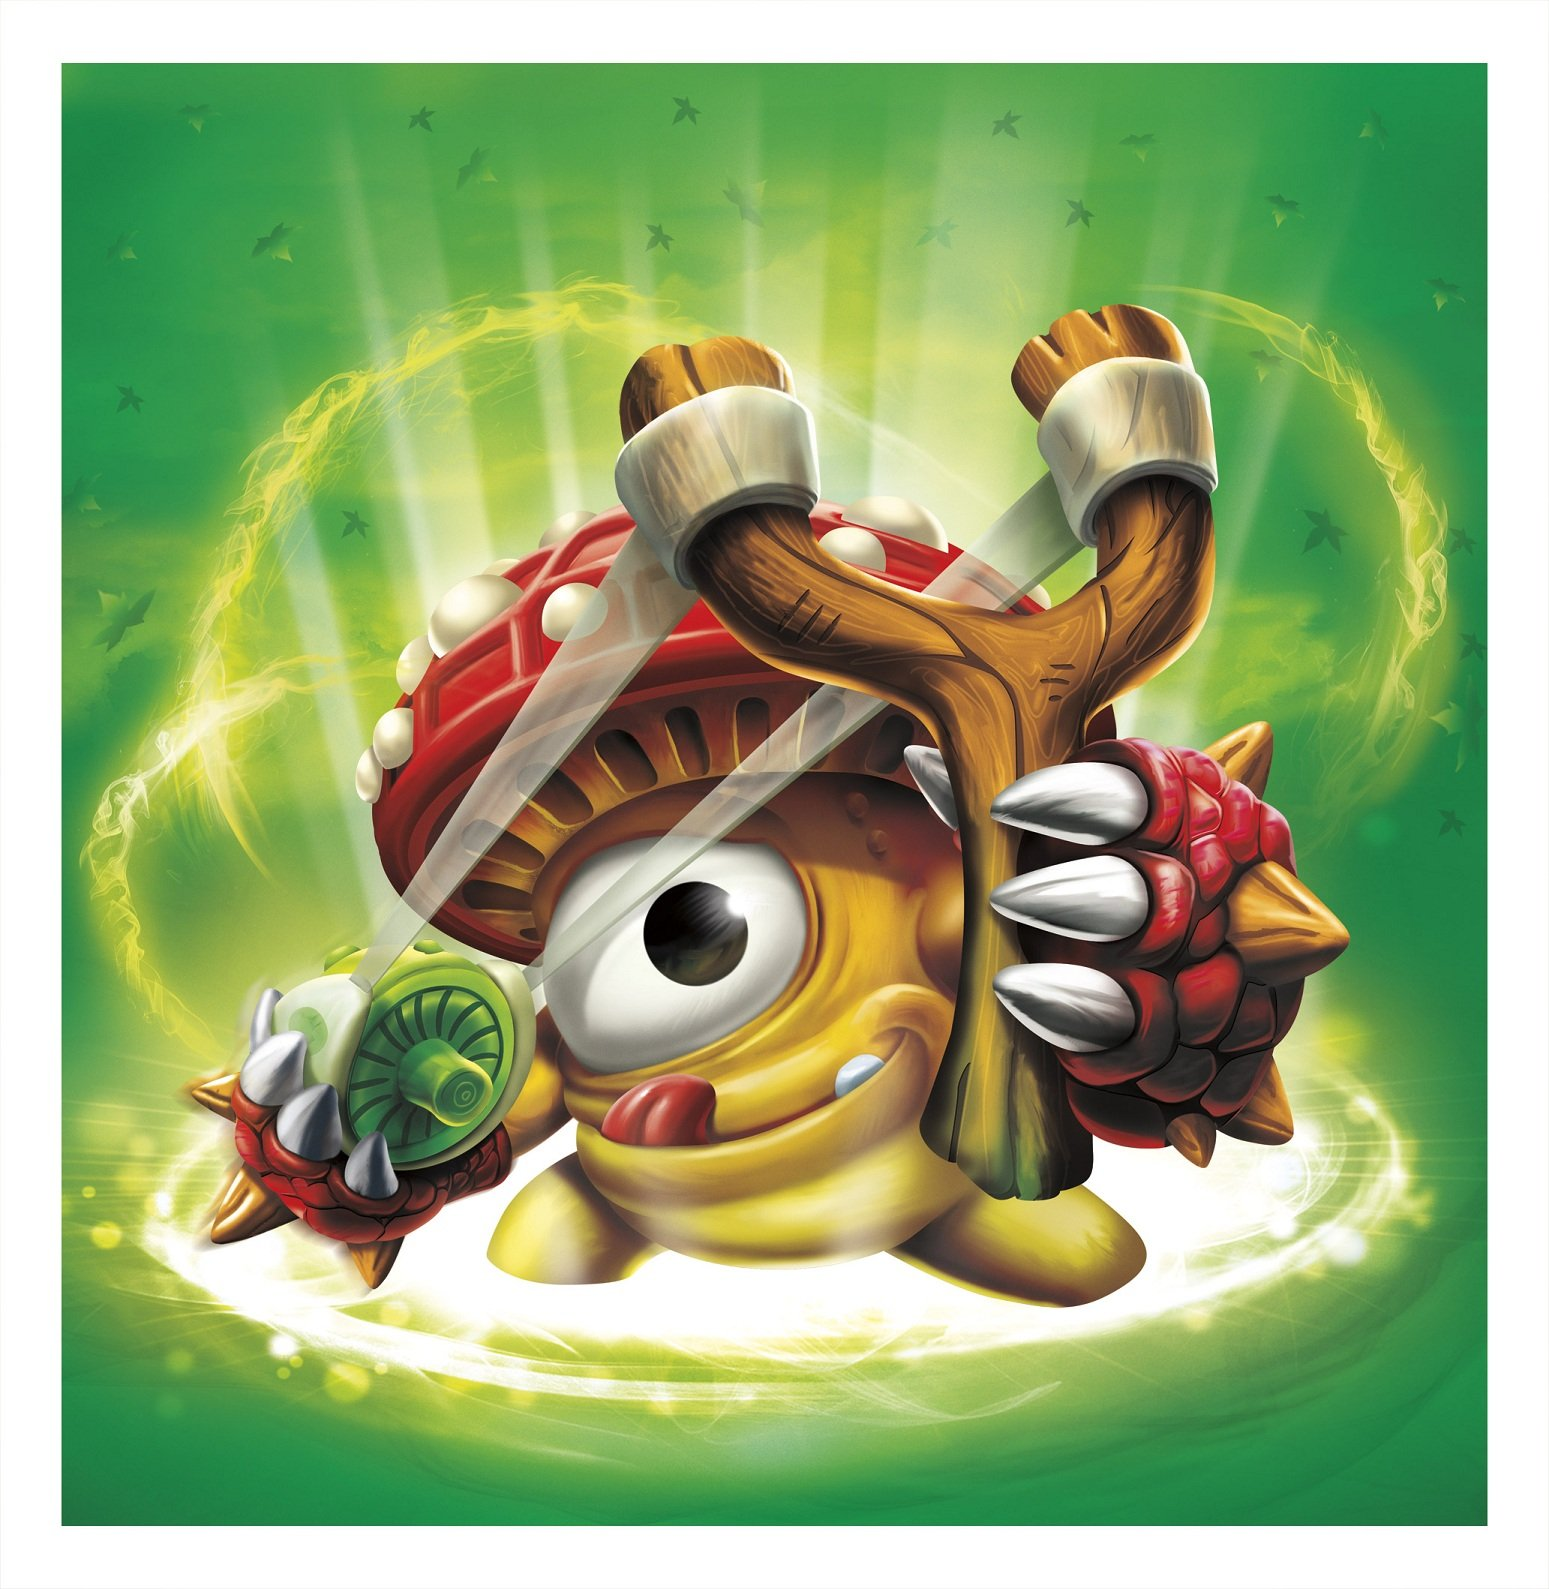 Shroomboom Art